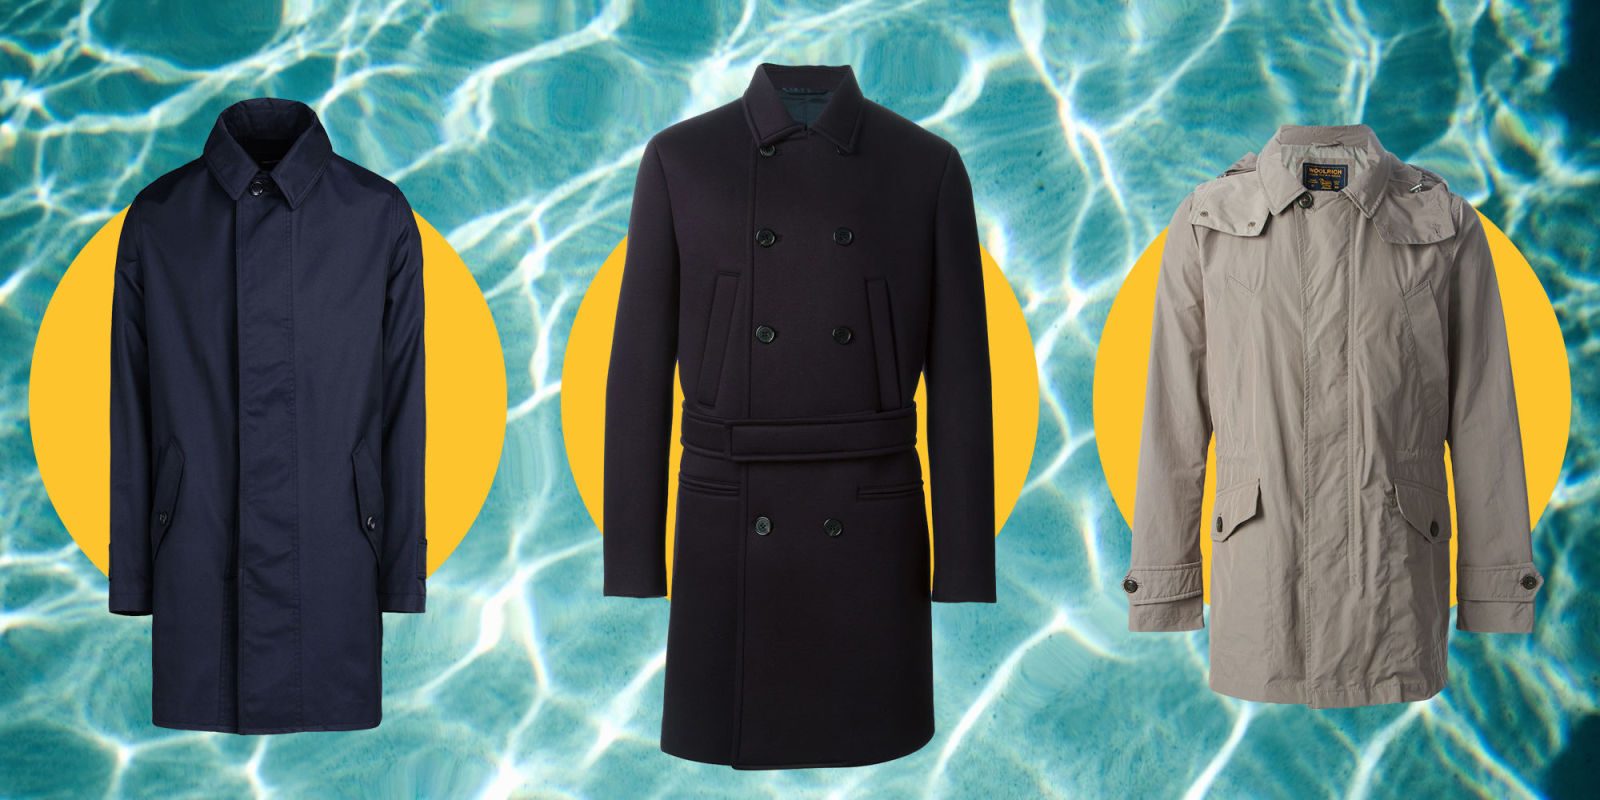 When Is the Best Time to Buy a Winter Coat? - Summer Sales Are the